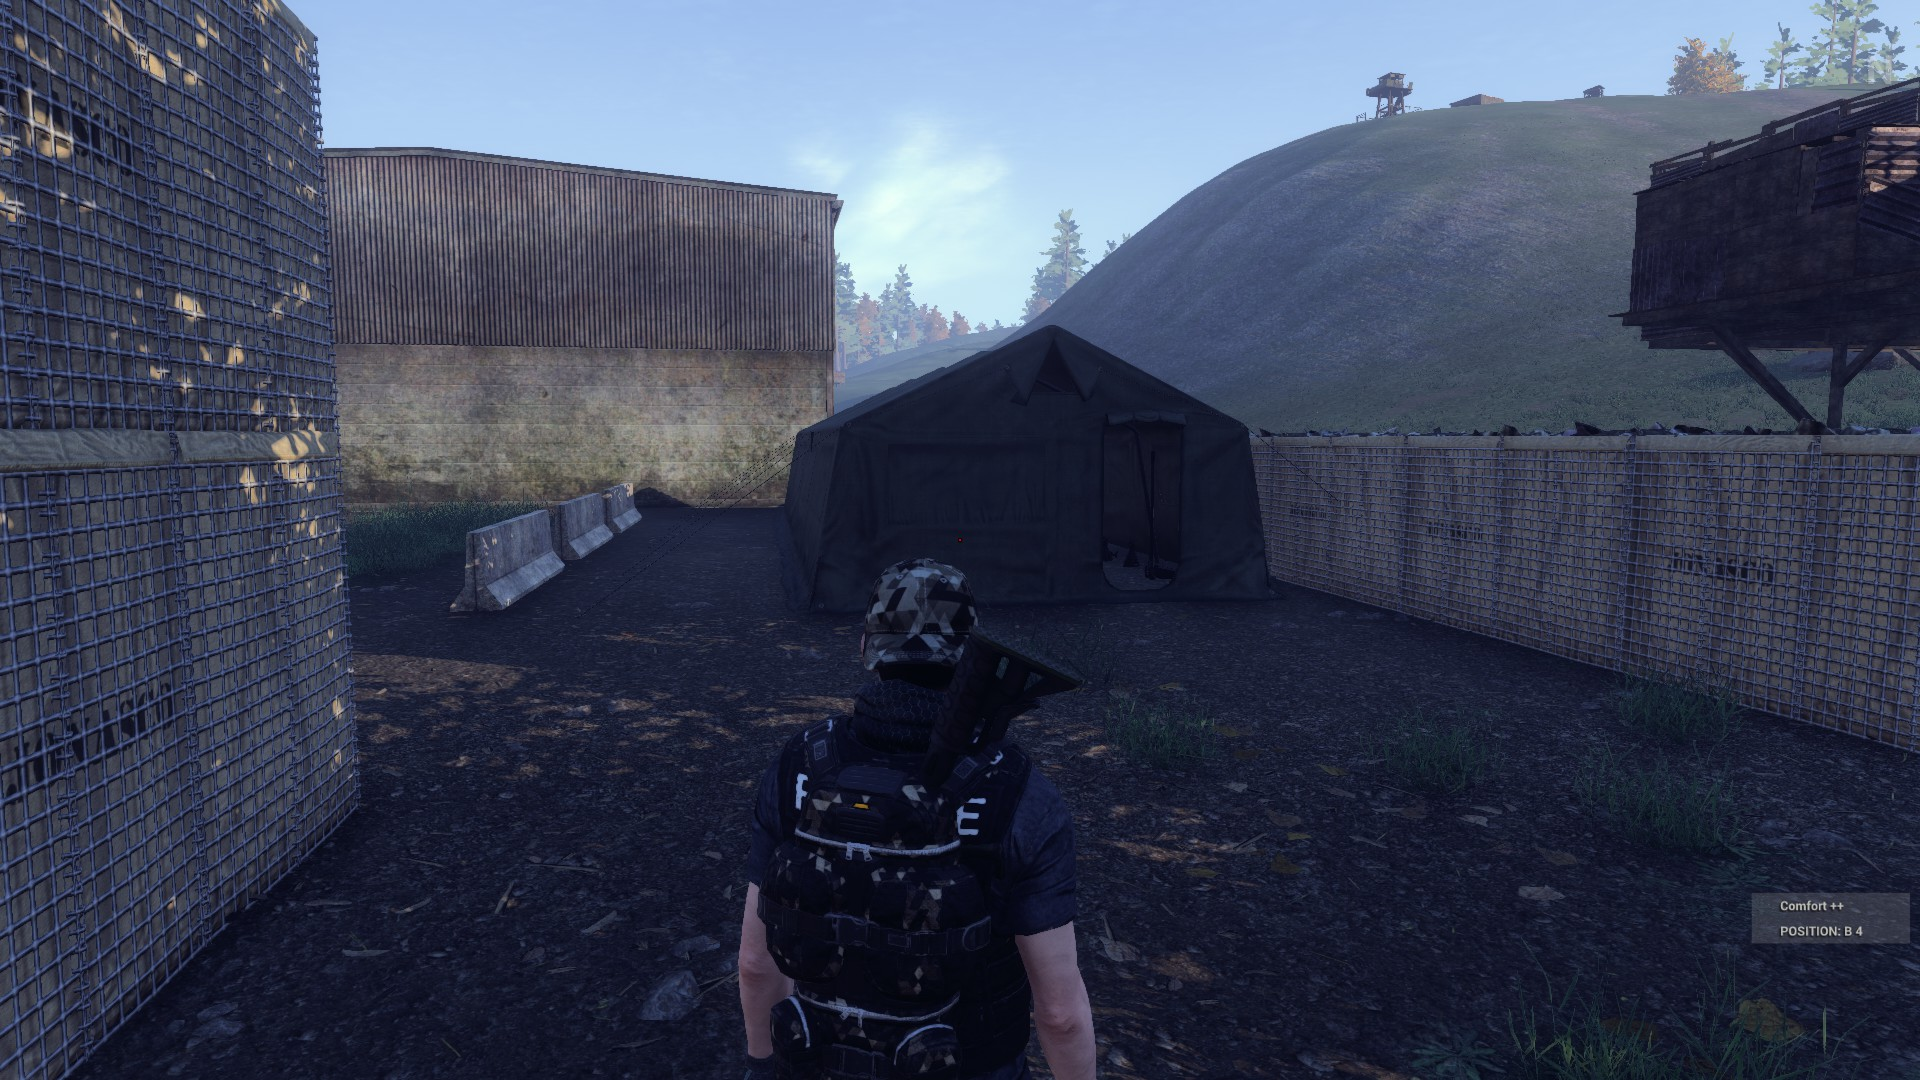 This military tent is a popular place for players to look for a Wrench.